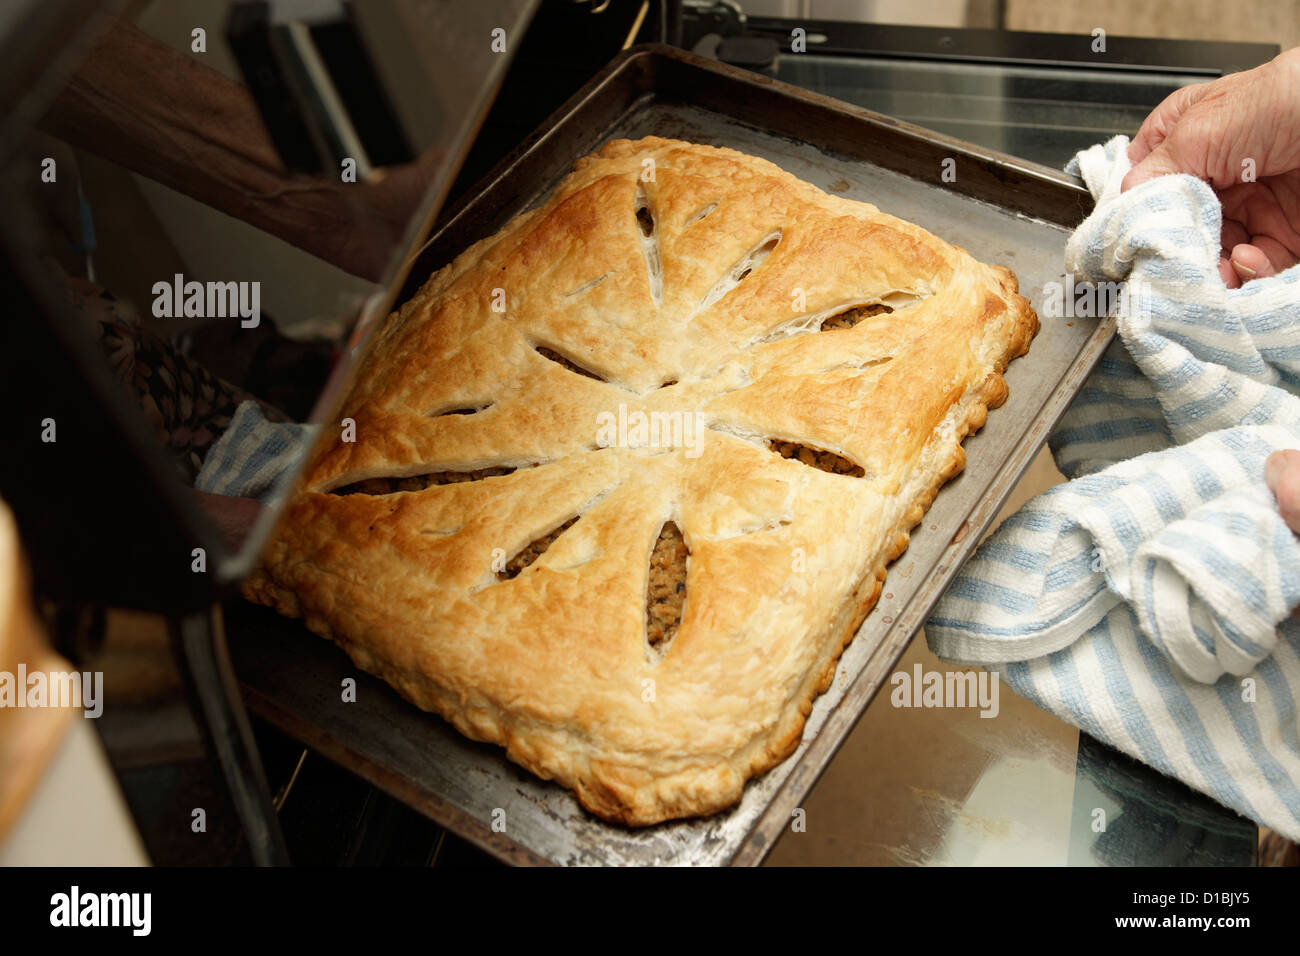 Elderly woman home baking taking a savoury pastry pie out of the oven Stock Photo